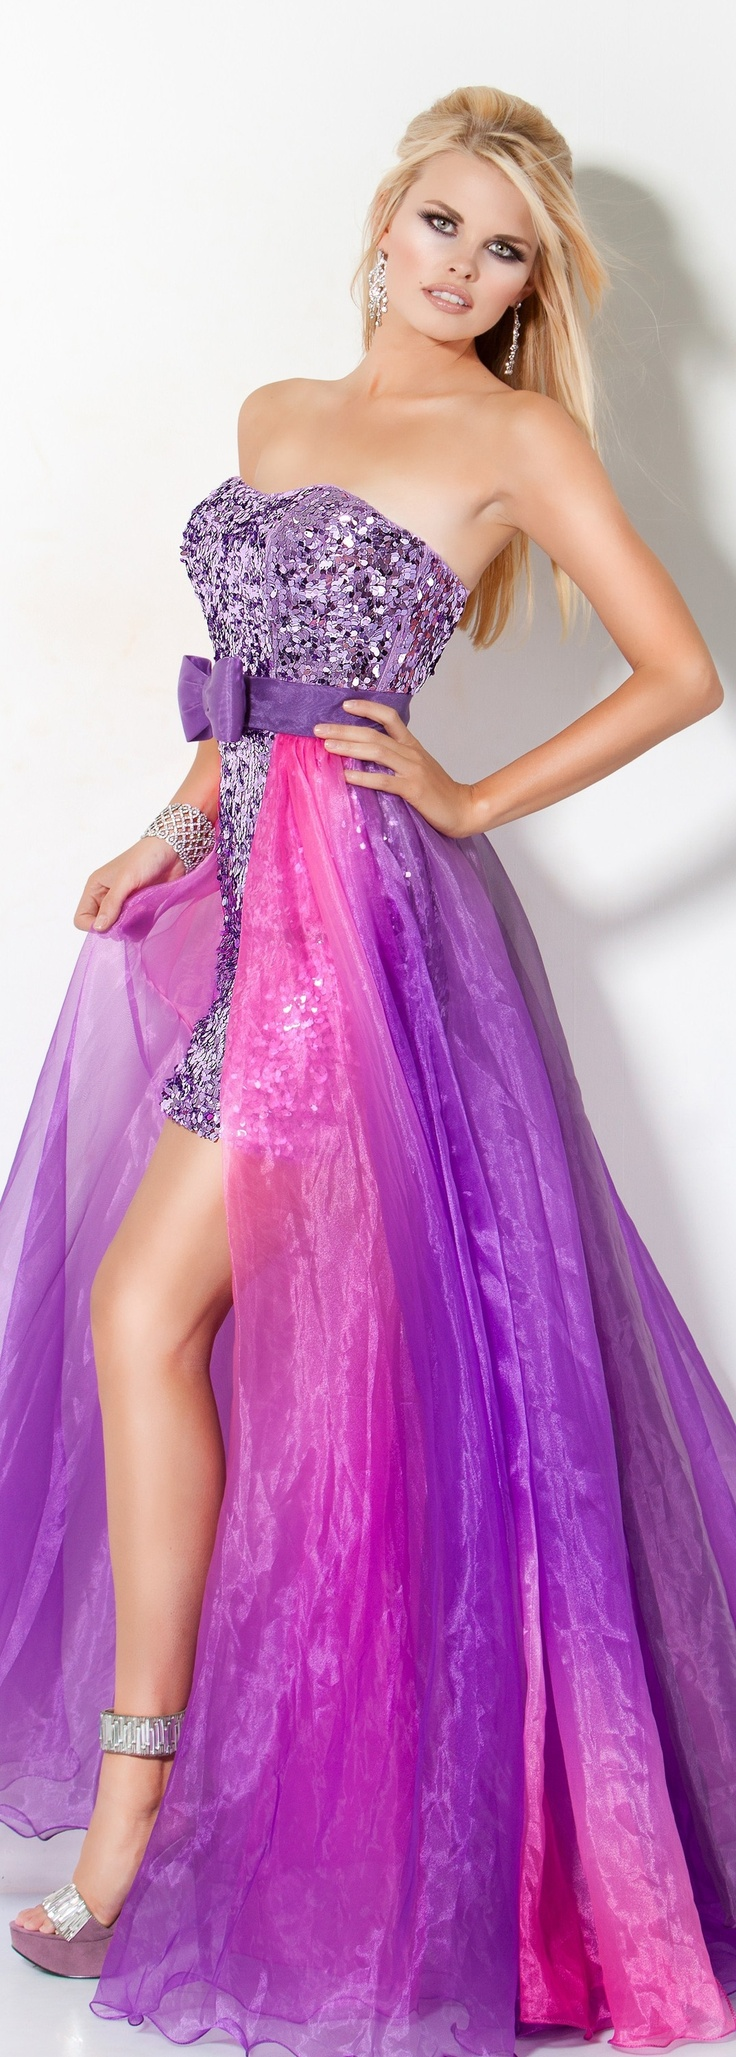 218 best Vestidos de noche images on Pinterest | Party outfits ...